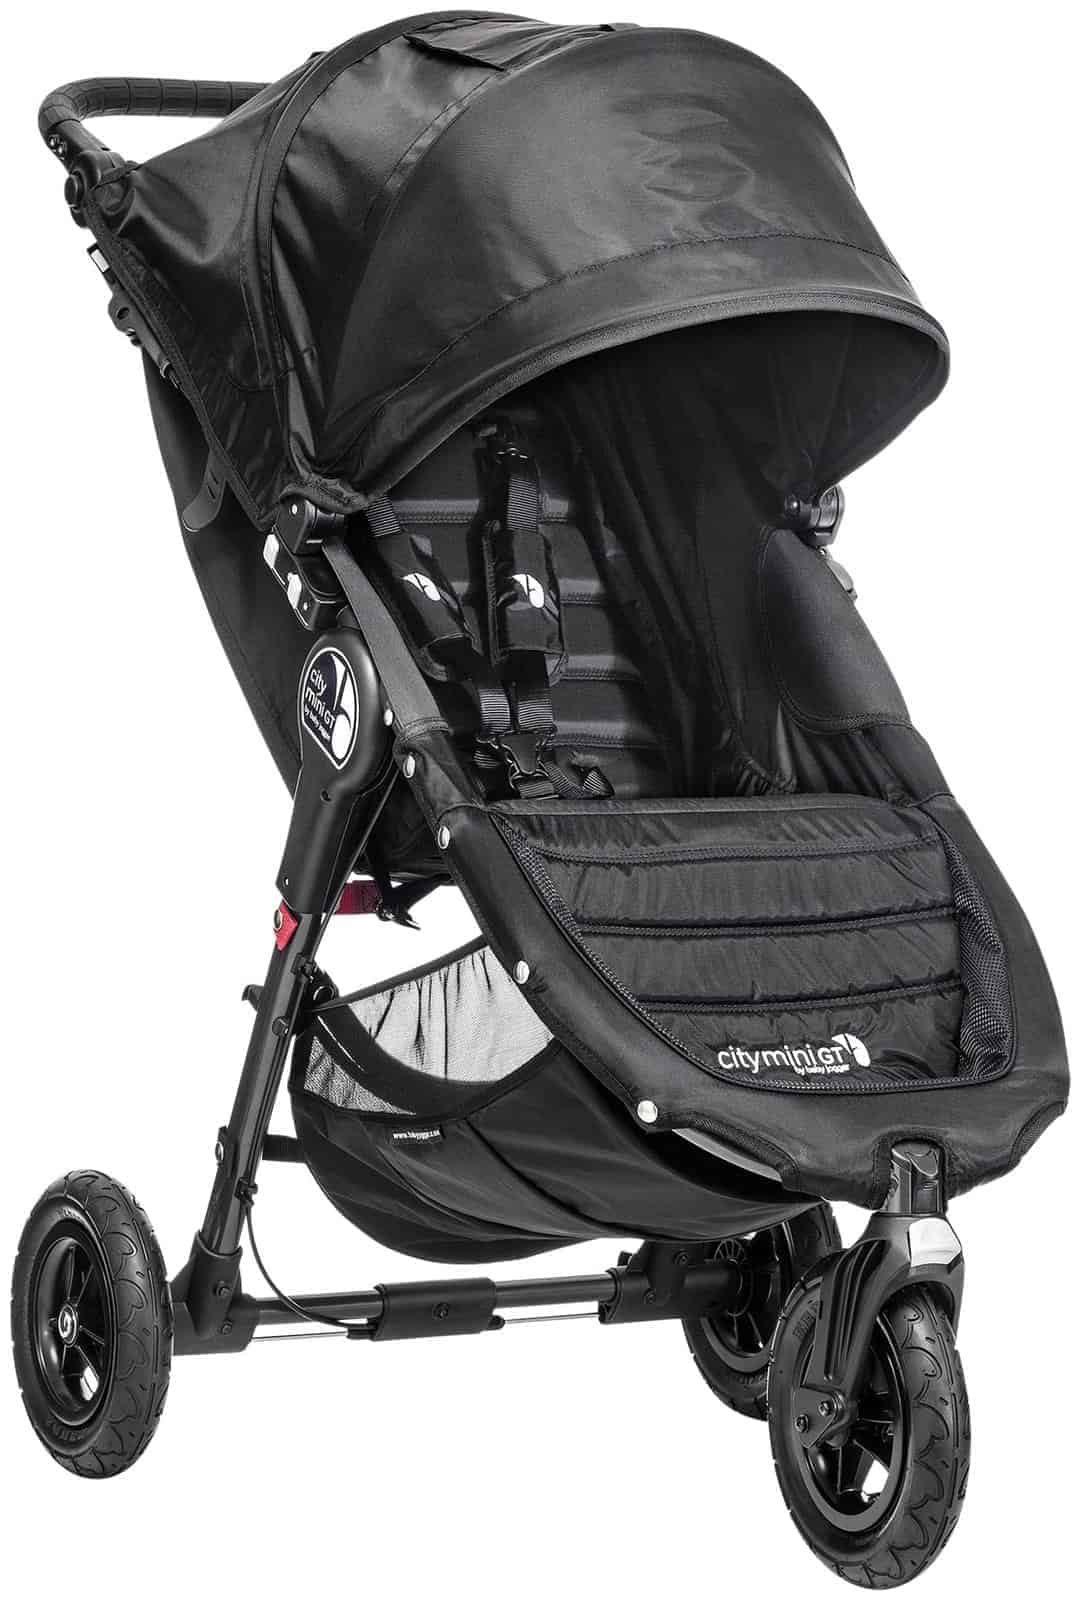 Best Travel Stroller, baby jogger city mini, best stroller for travelling